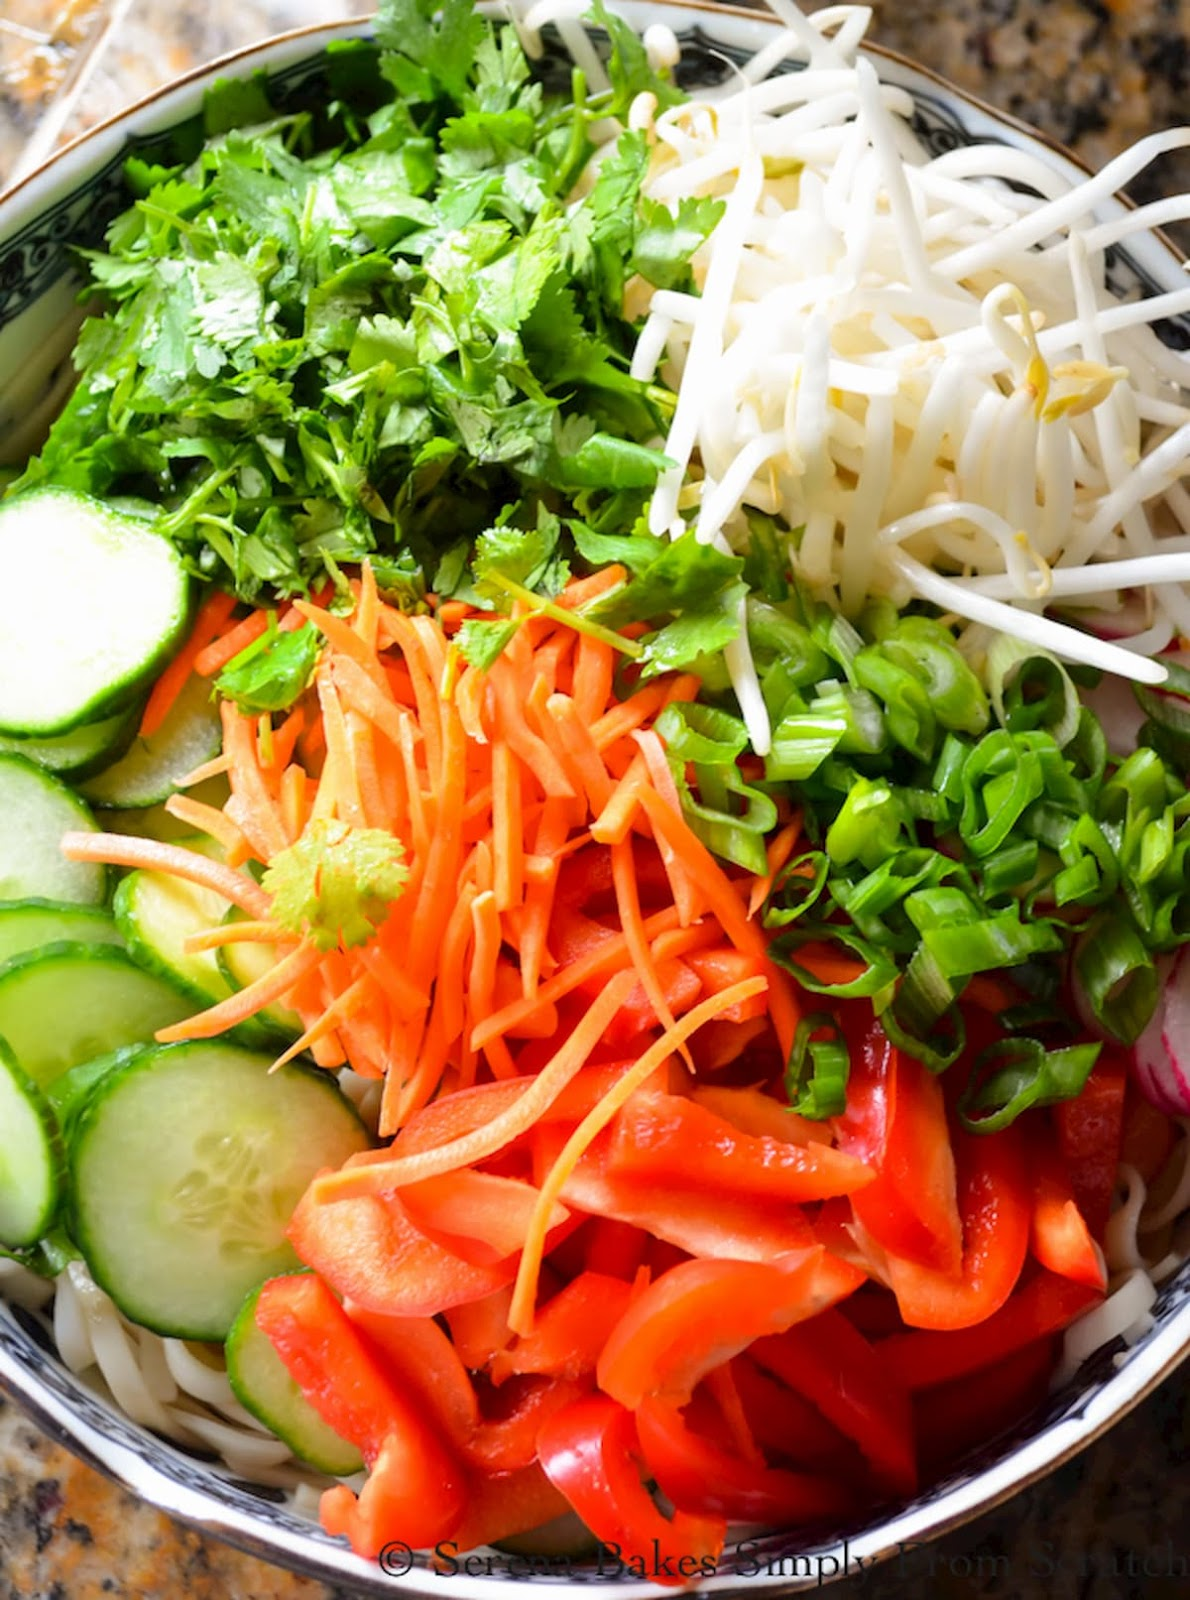 A blue and white bowl filled with somen noodles, sliced english cucumber, red bell pepper, radish, shredded carrots, mung bean sprouts, cilantro leaves, and sliced scallions.